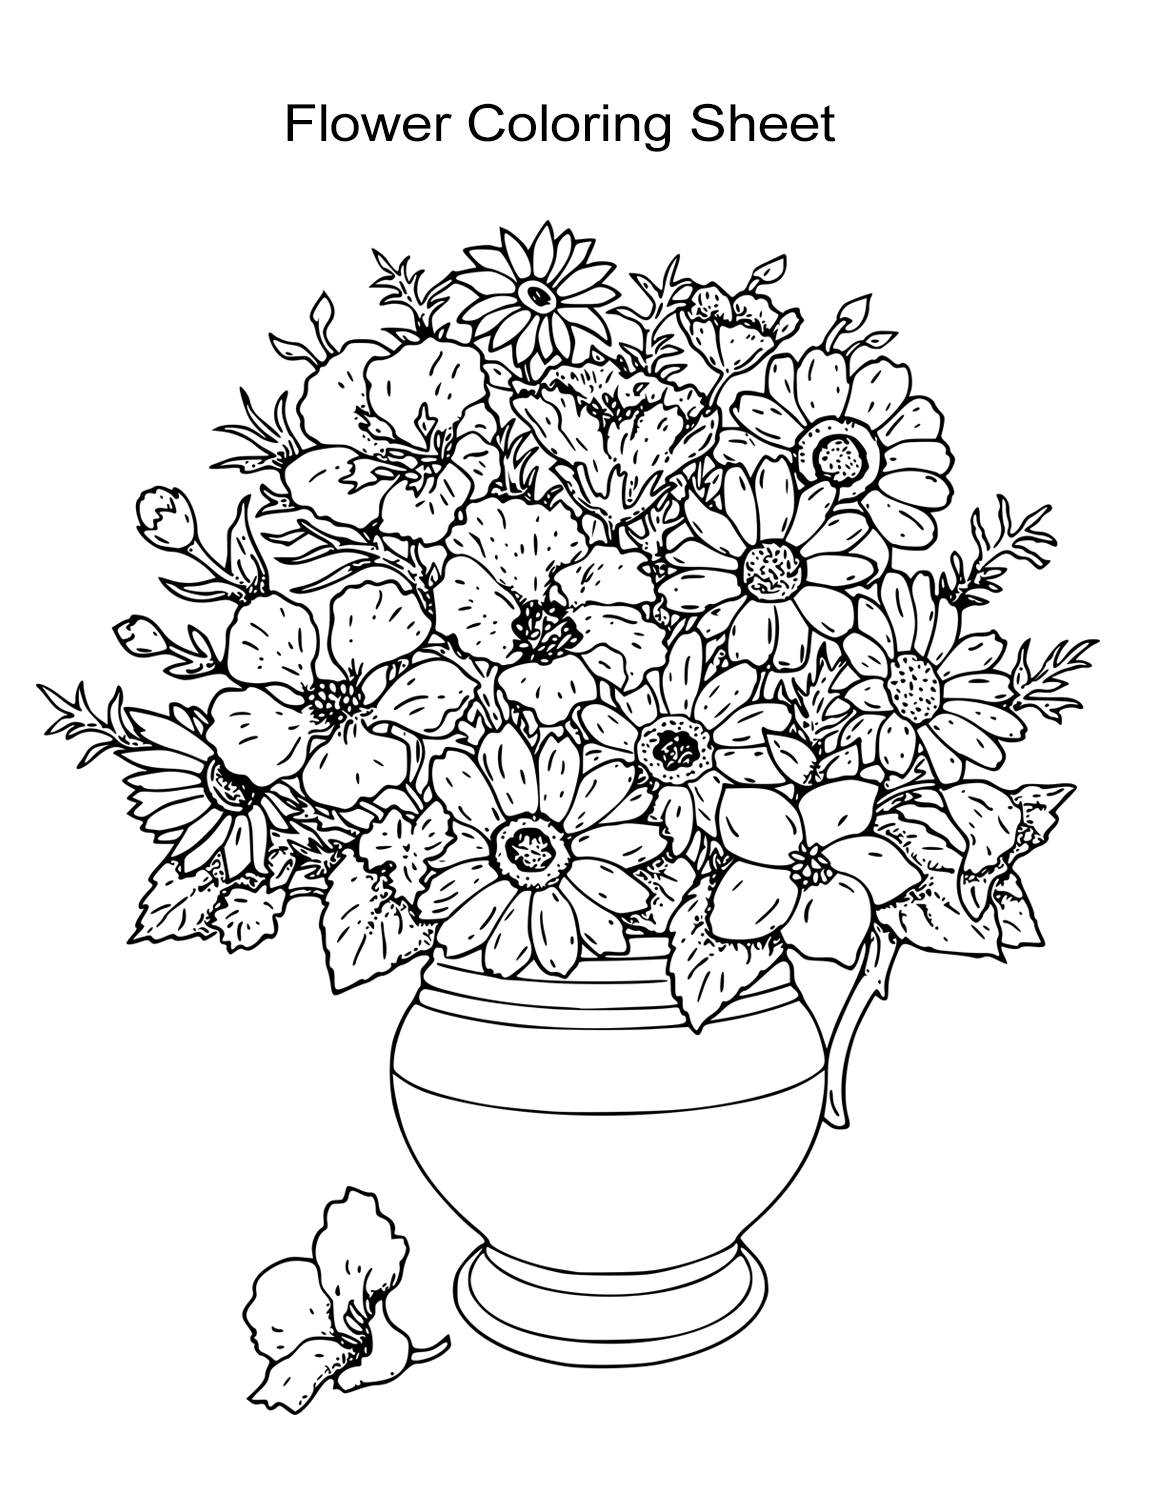 flower for coloring 10 flower coloring sheets for girls and boys all esl flower for coloring